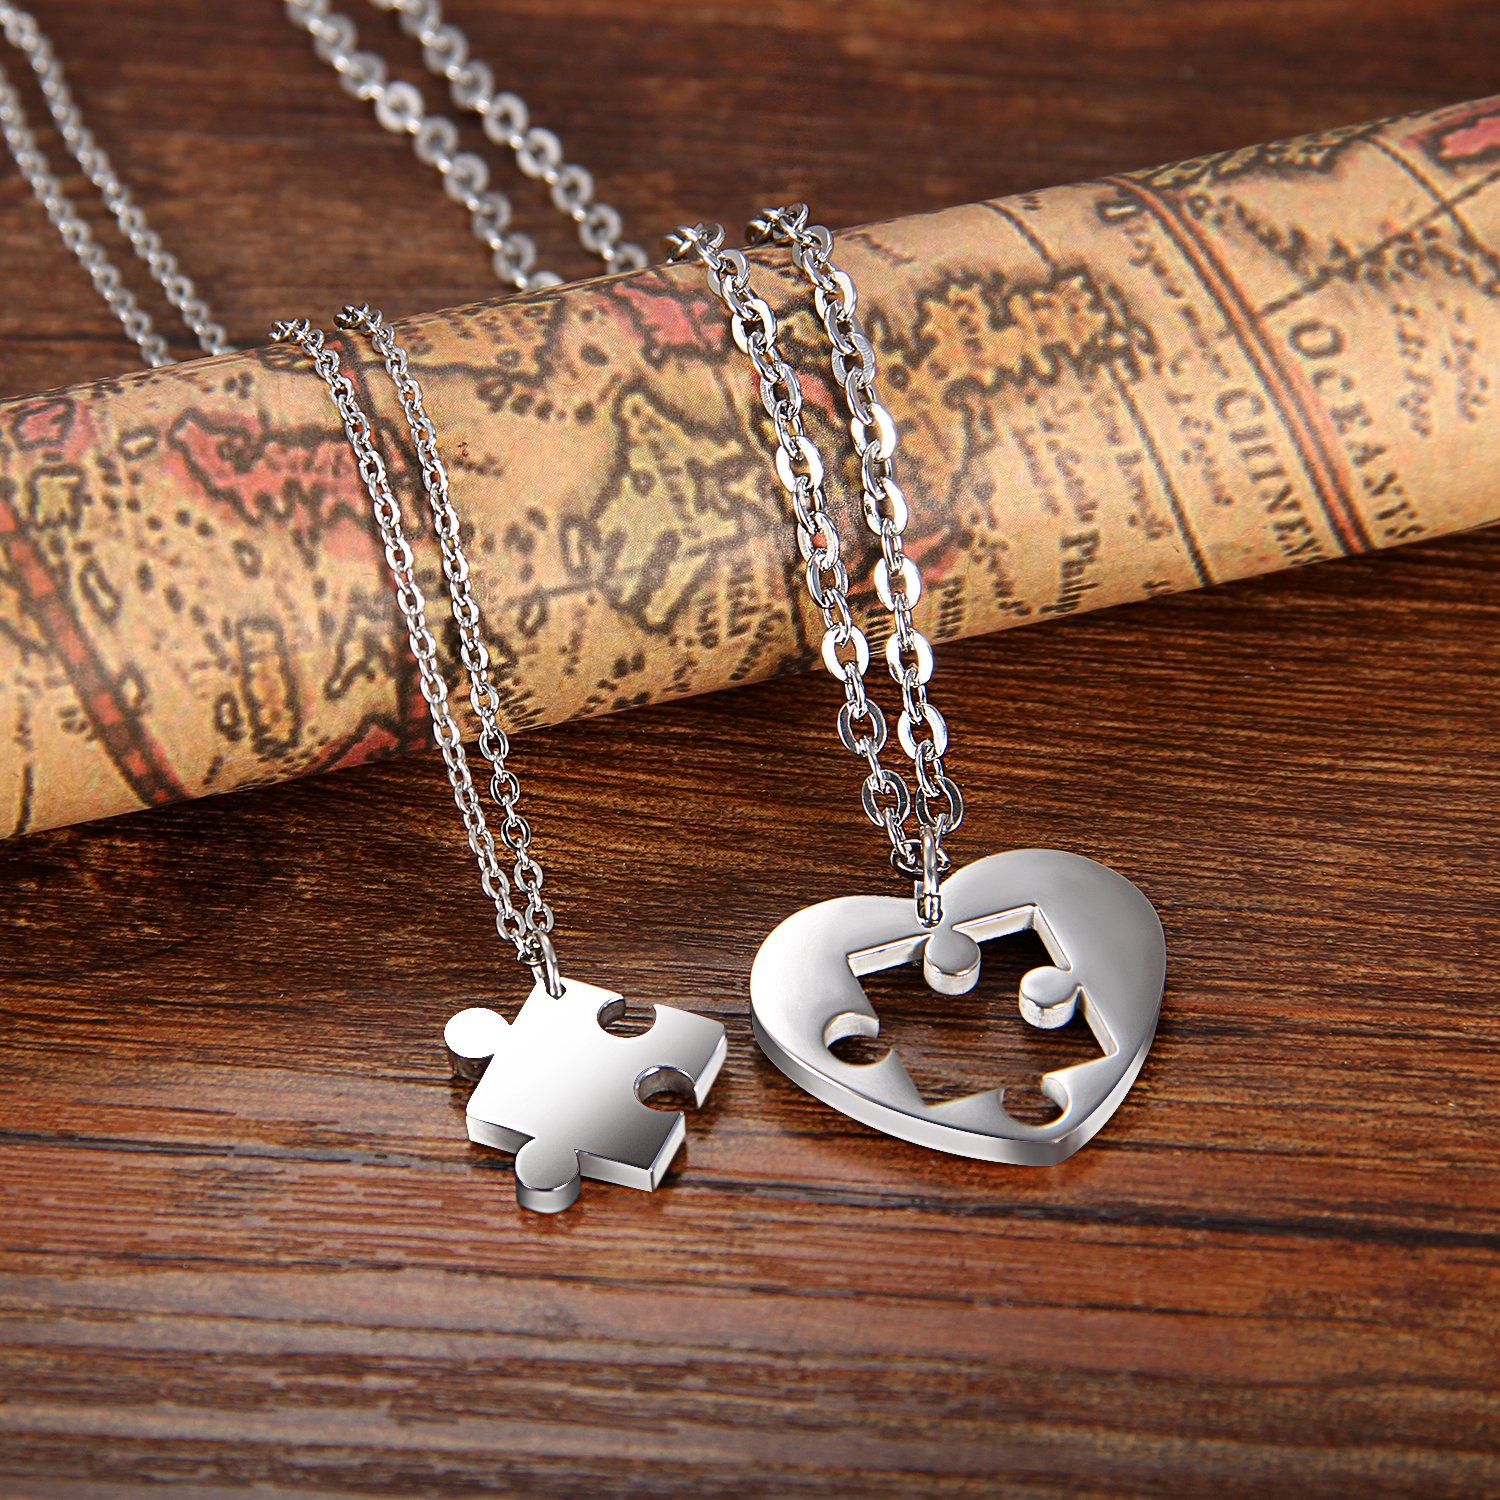 a5f49f576 Cupimatch Couples Necklace 2 Pieces Stainless Steel Love Heart Puzzle  Matching Pendant, Chain Included